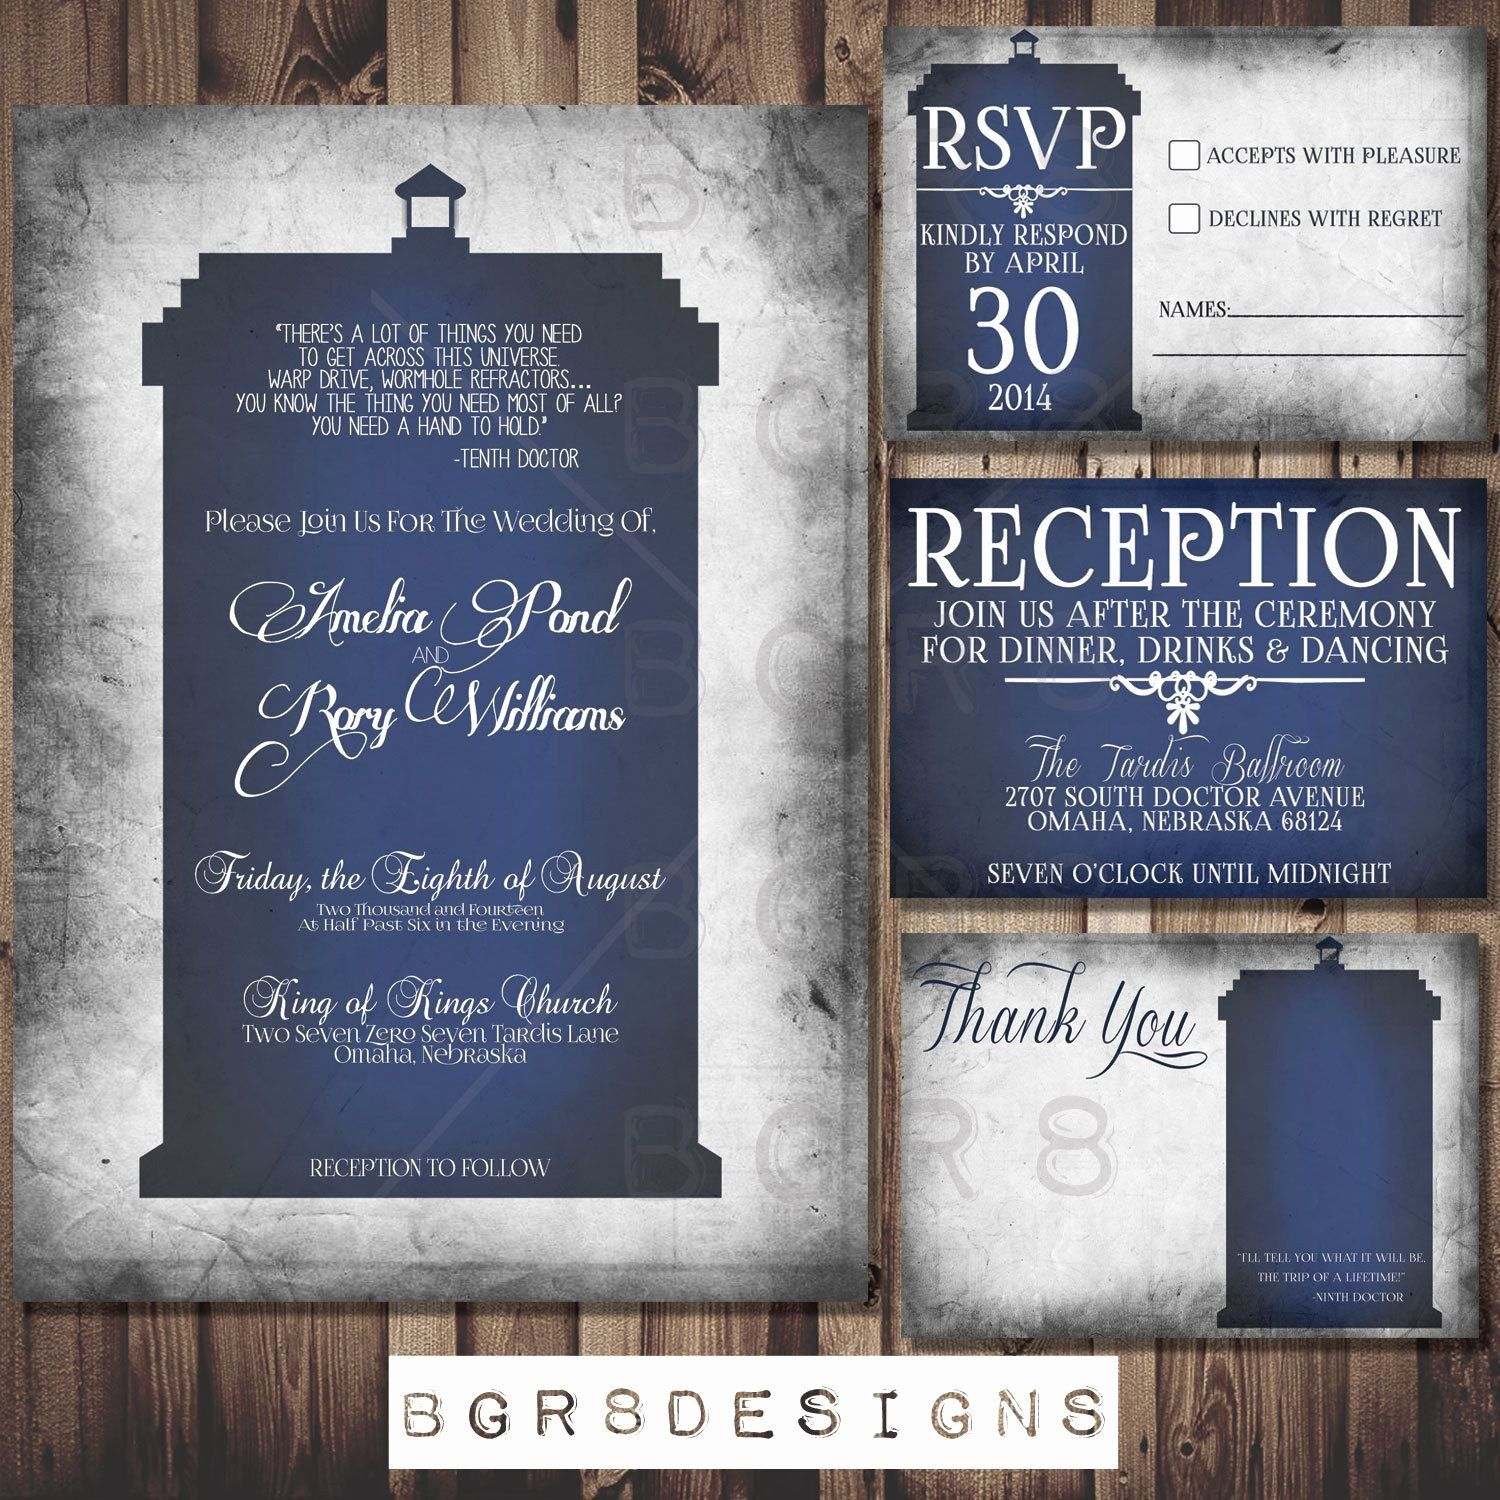 Doctor who Wedding Invitation Template Best Of Doctor who Tardis